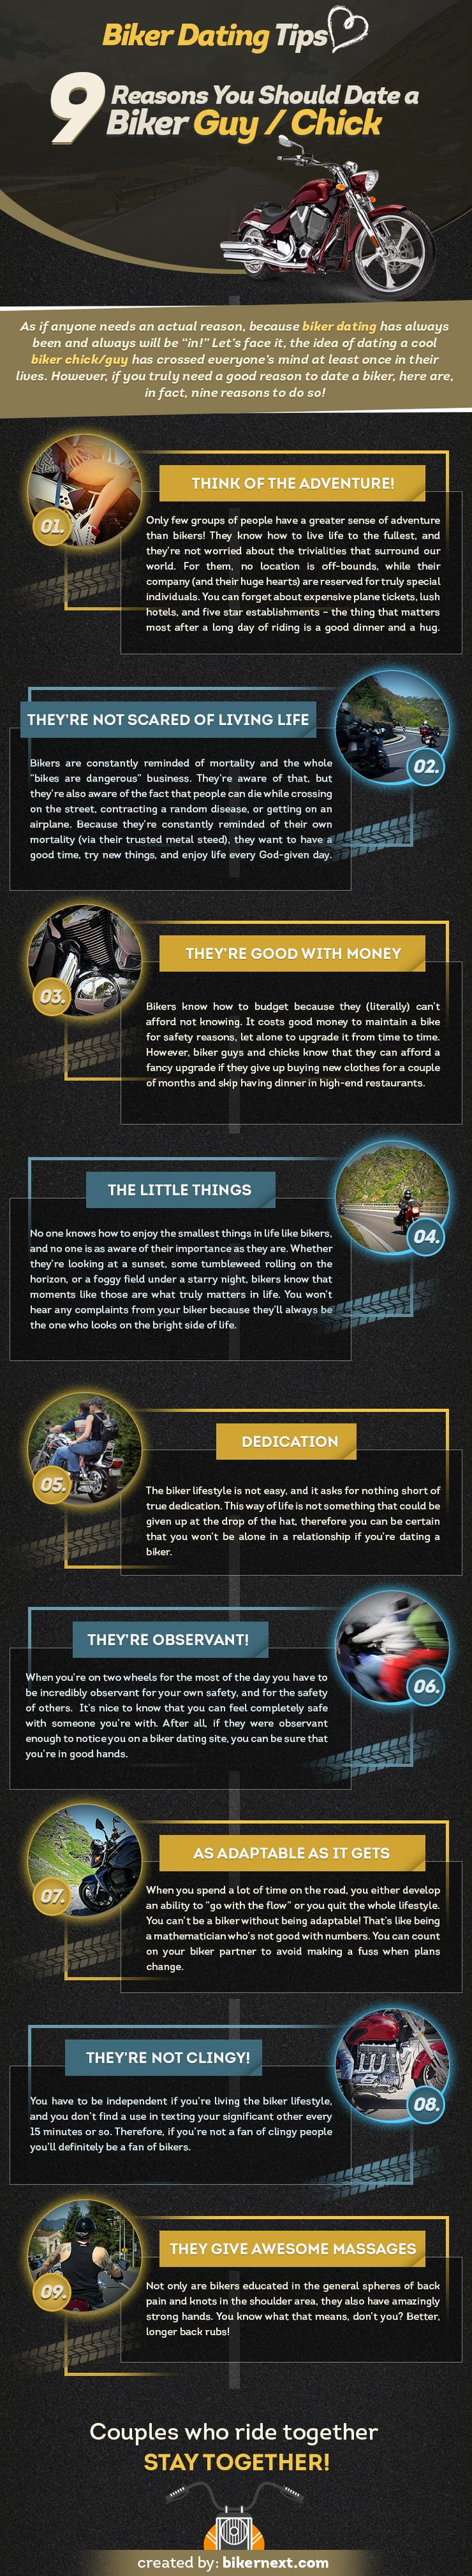 "Biker Dating Tips: 9 Reasons You Should Date a Biker Guy/Chick [INFOFGRAPHIC] As if anyone needs an actual reason, because biker dating has always been and always will be ""in!"" Let's face it, the idea of dating a cool biker chick/guy has crossed everyone's mind at least once in their lives. However, if you truly need a good reason to date a biker, here are, in fact, nine reasons to do so!"